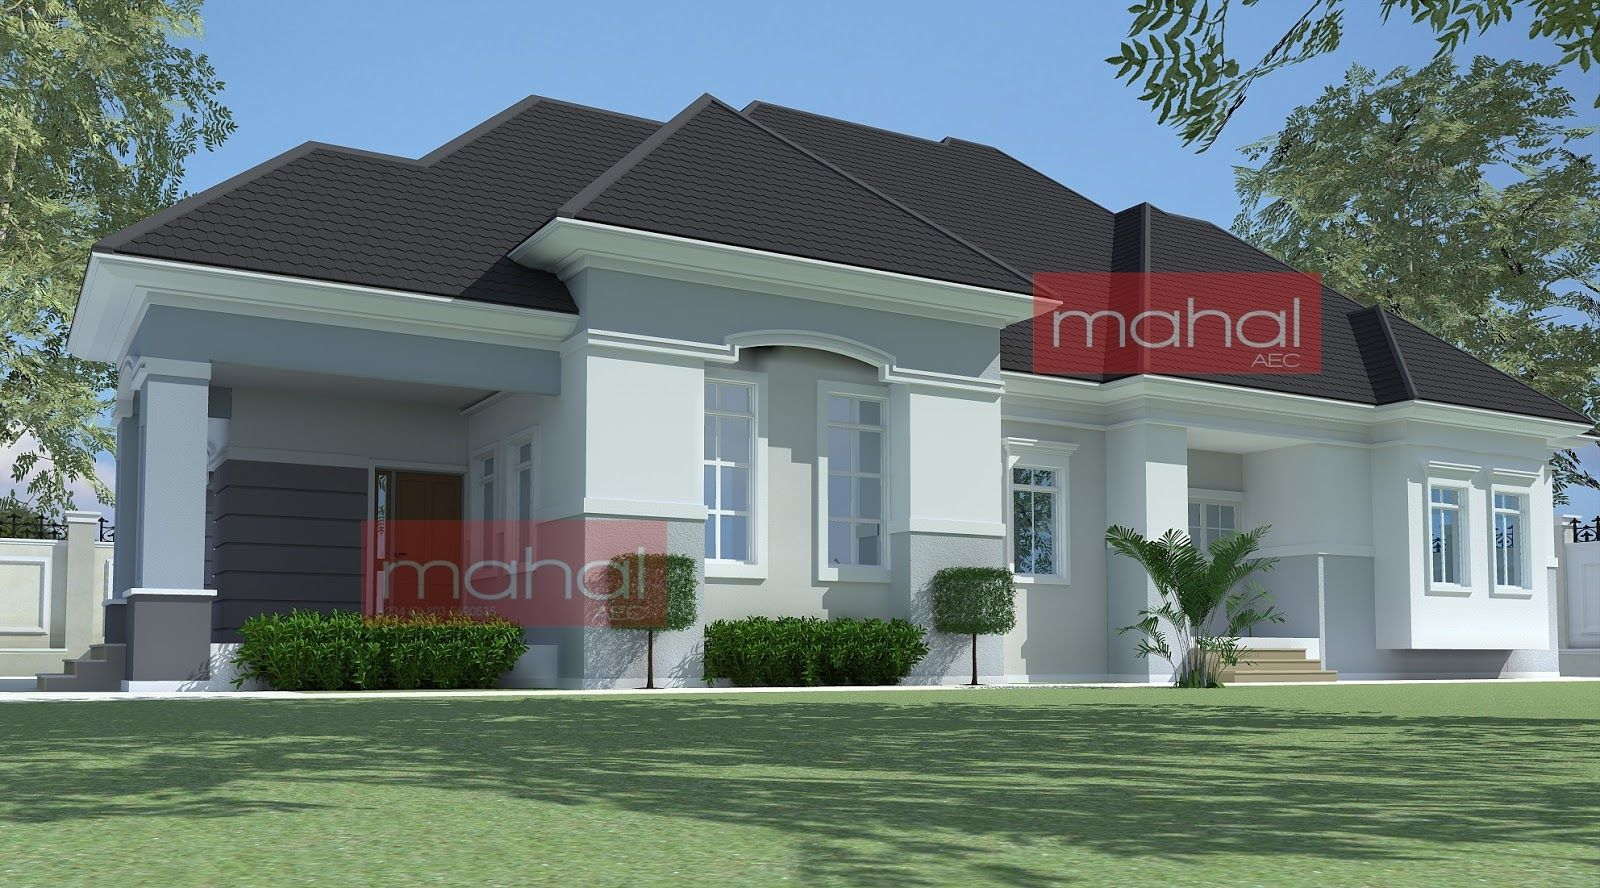 Bungalow house plans modern bedrooms exterior design bungalows norman home designs power